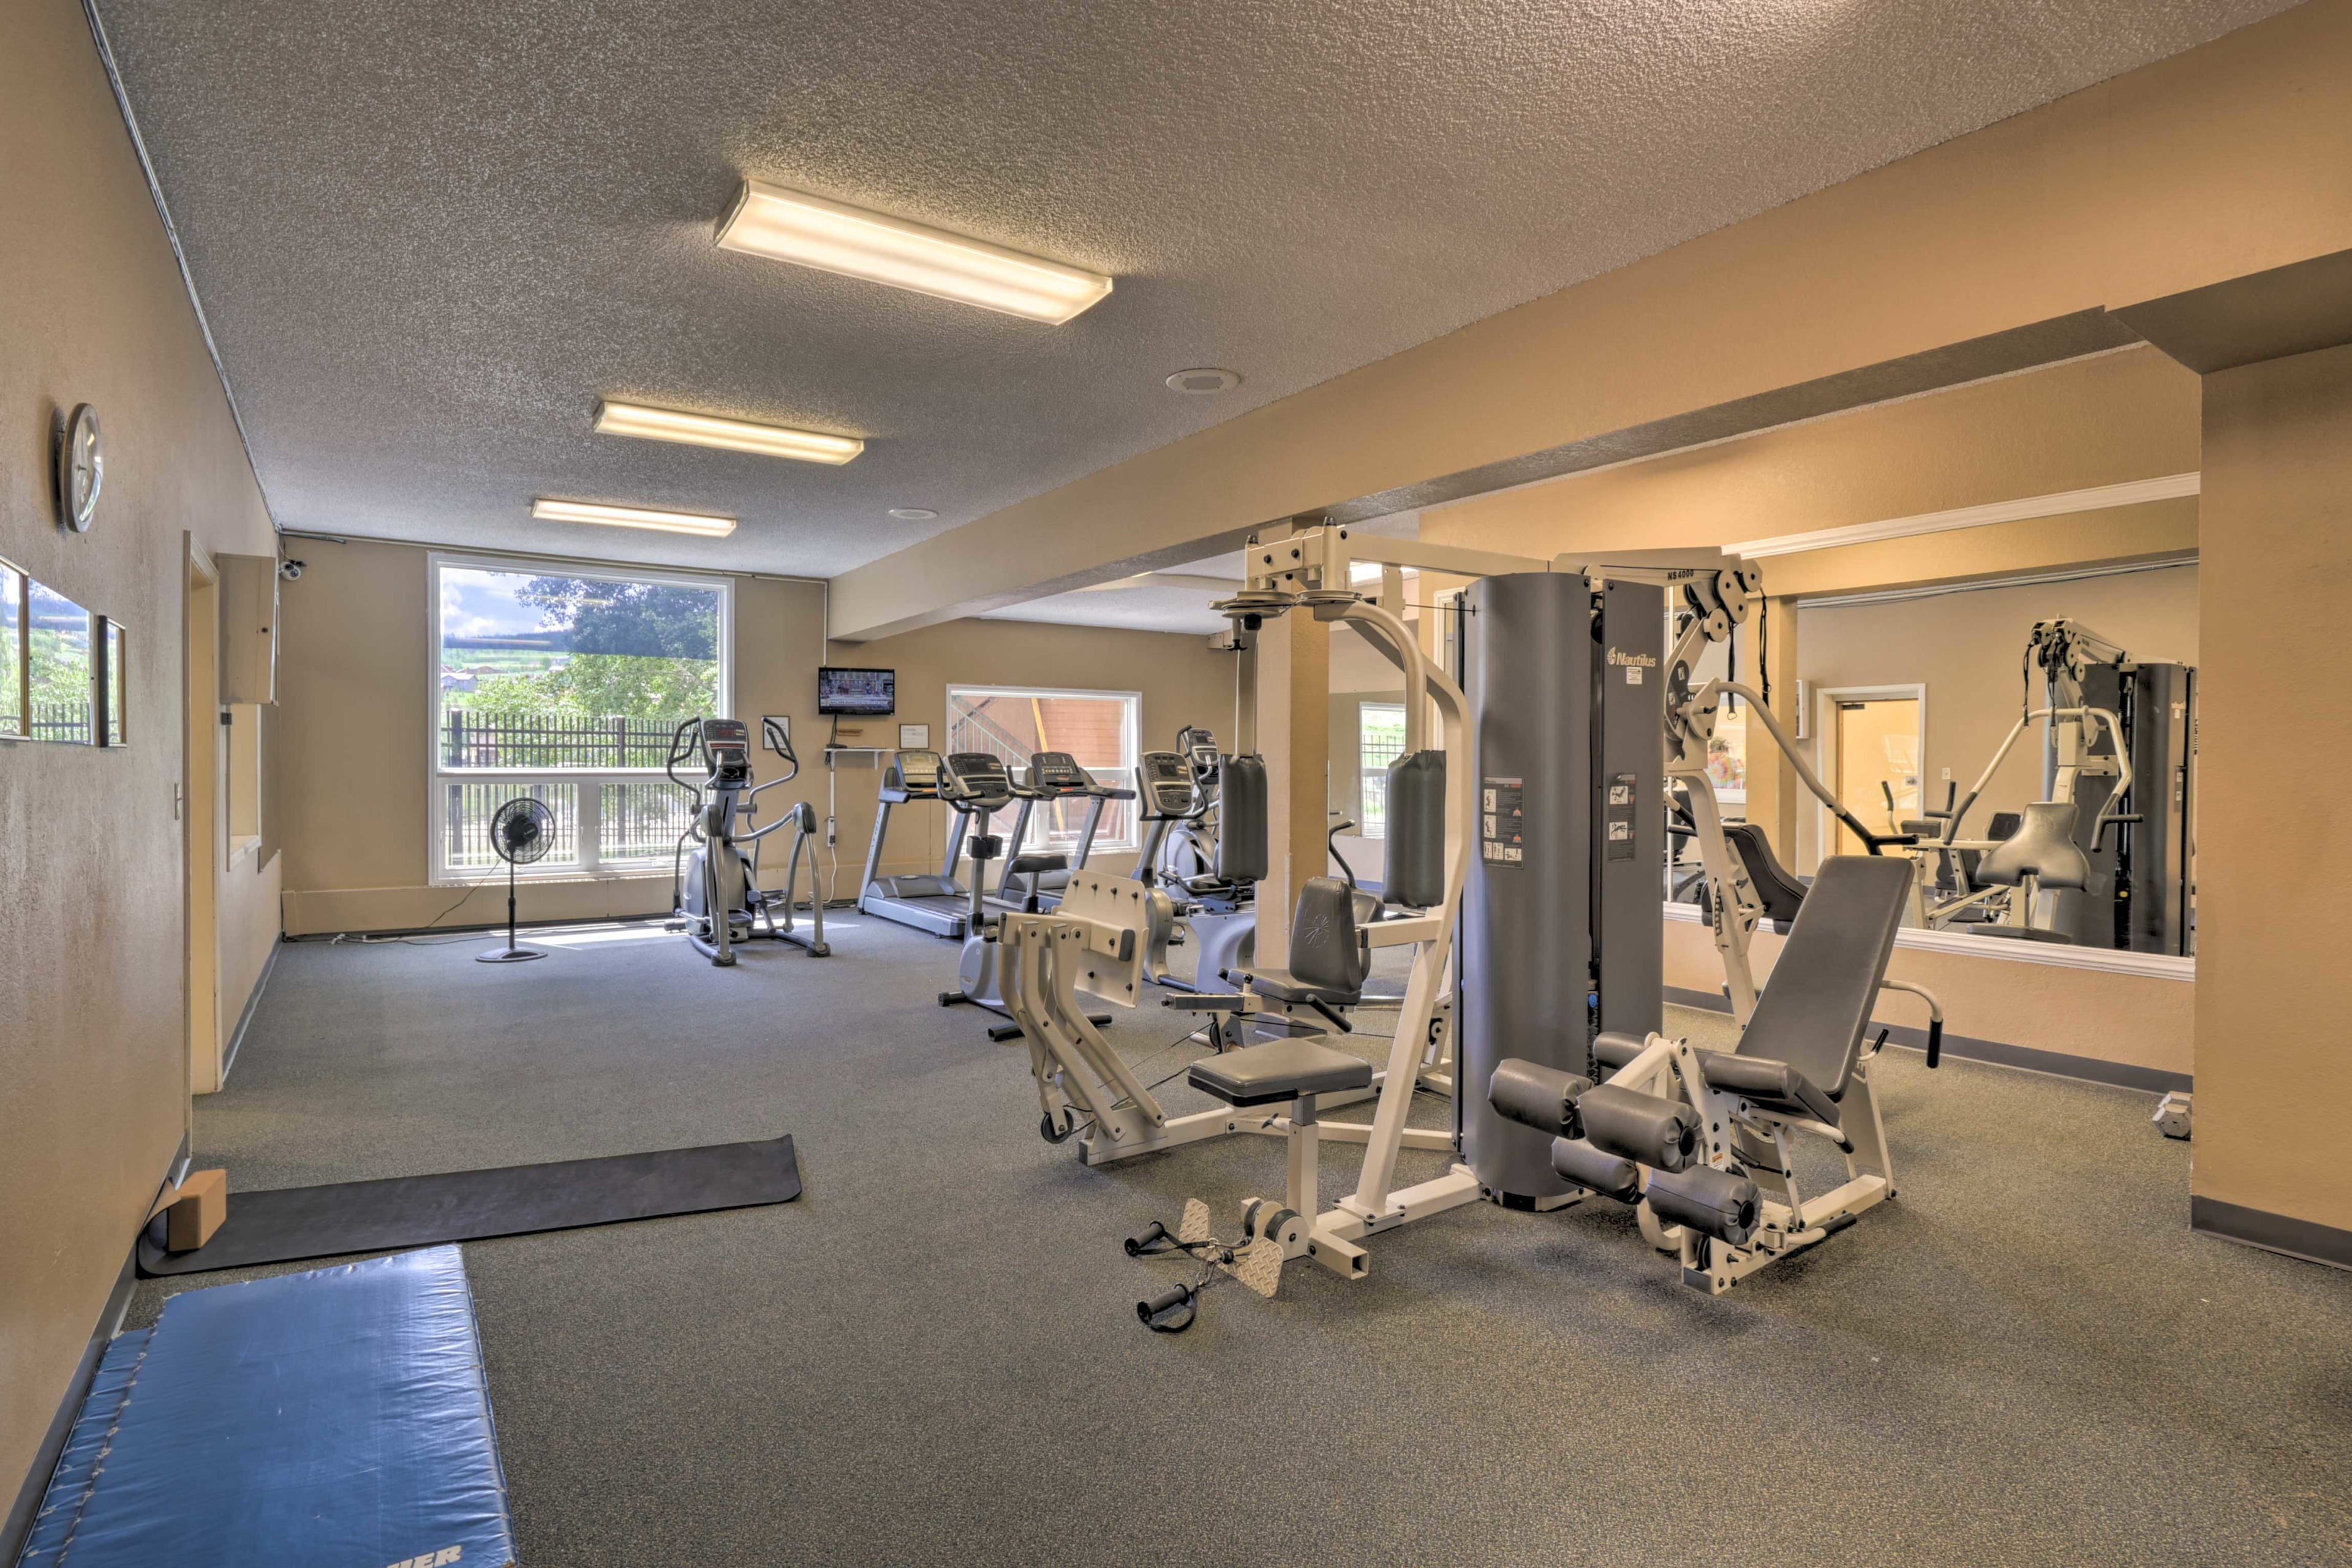 Work on your fitness in the recreation room.